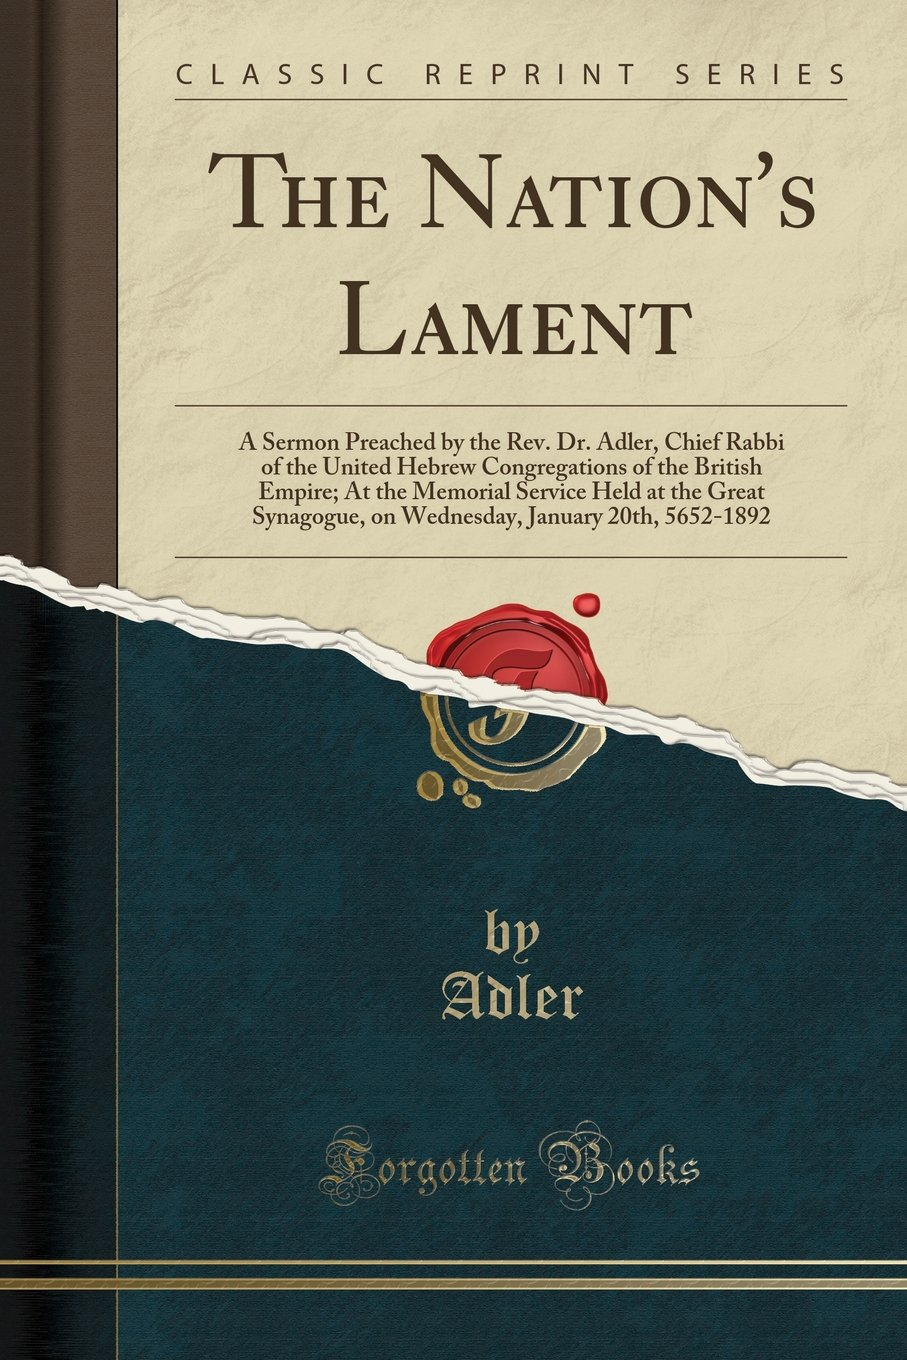 The Nation's Lament: A Sermon Preached by the Rev. Dr. Adler, Chief Rabbi of the United Hebrew Congregations of the British Empire; At the Memorial ... January 20th, 5652-1892 (Classic Reprint) pdf epub